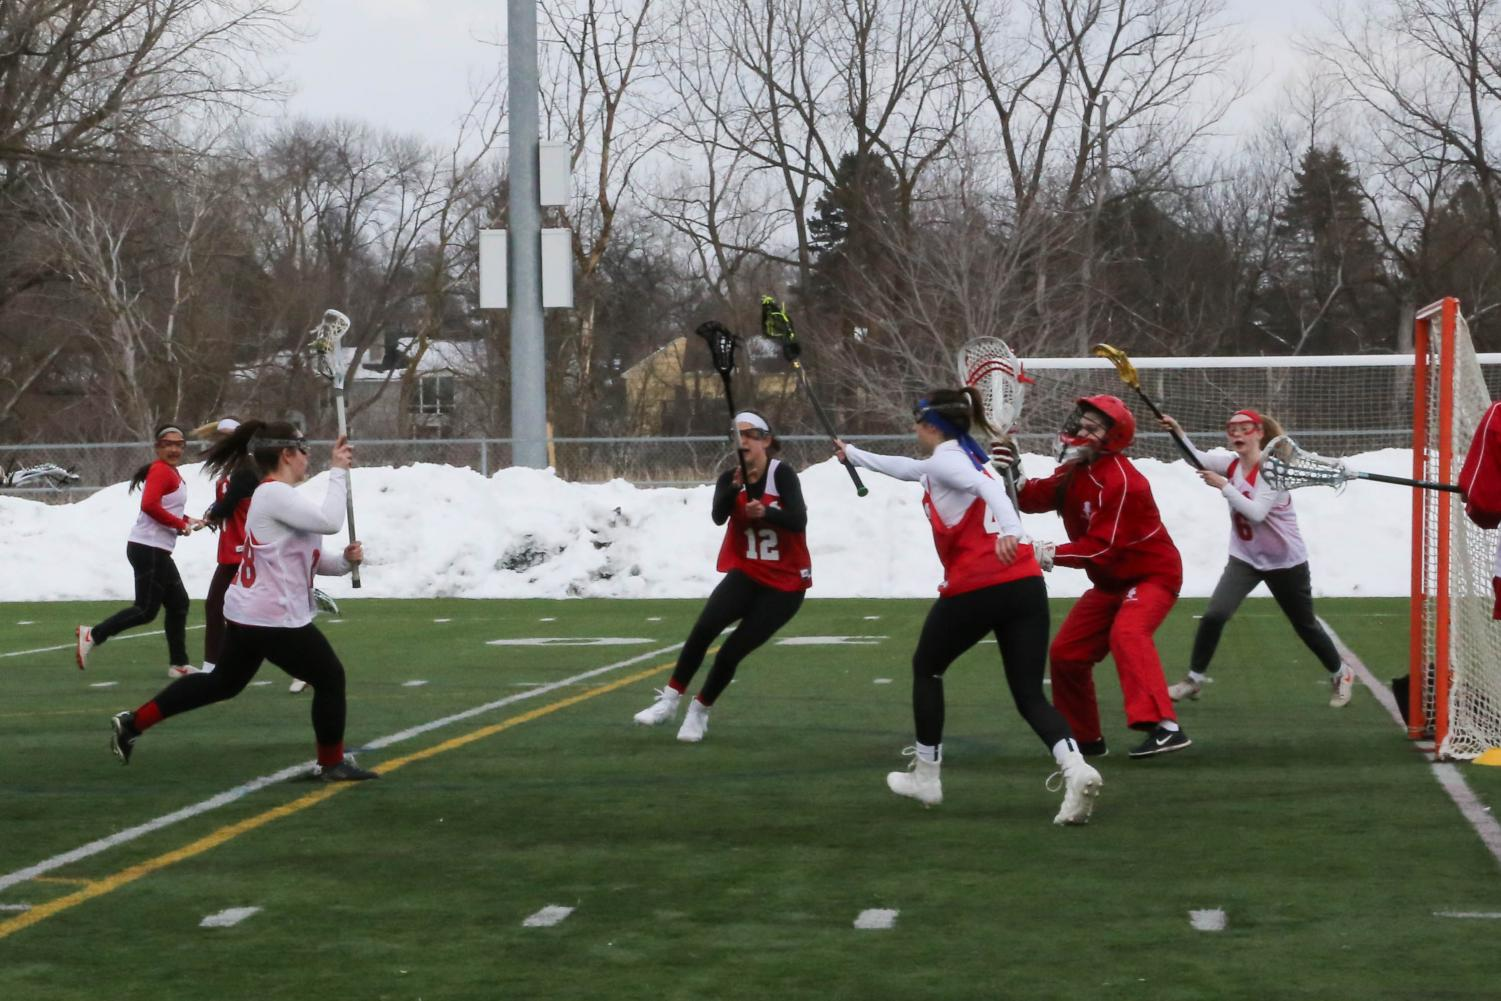 Despite the snow surrounding the field, members of the girls' lacrosse team get ready for the season. Personal workouts and captains' practices have been a part of their off-season preparation.